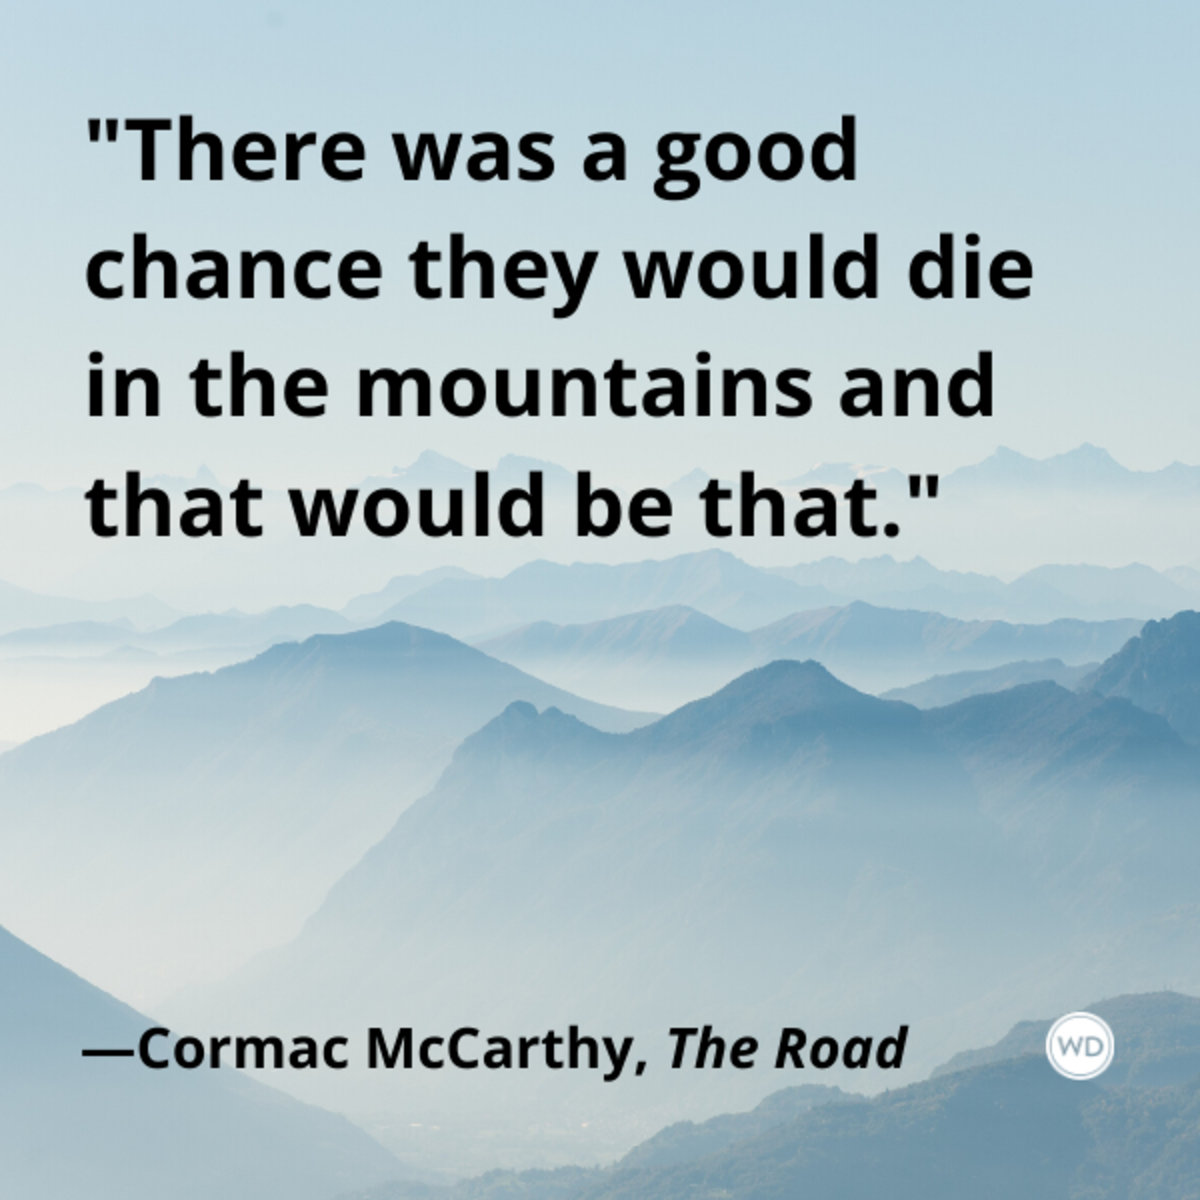 cormac_mccarthy_the_road_quotes_there_was_a_good_chance_they_would_die_in_the_mountains_and_that_would_be_that